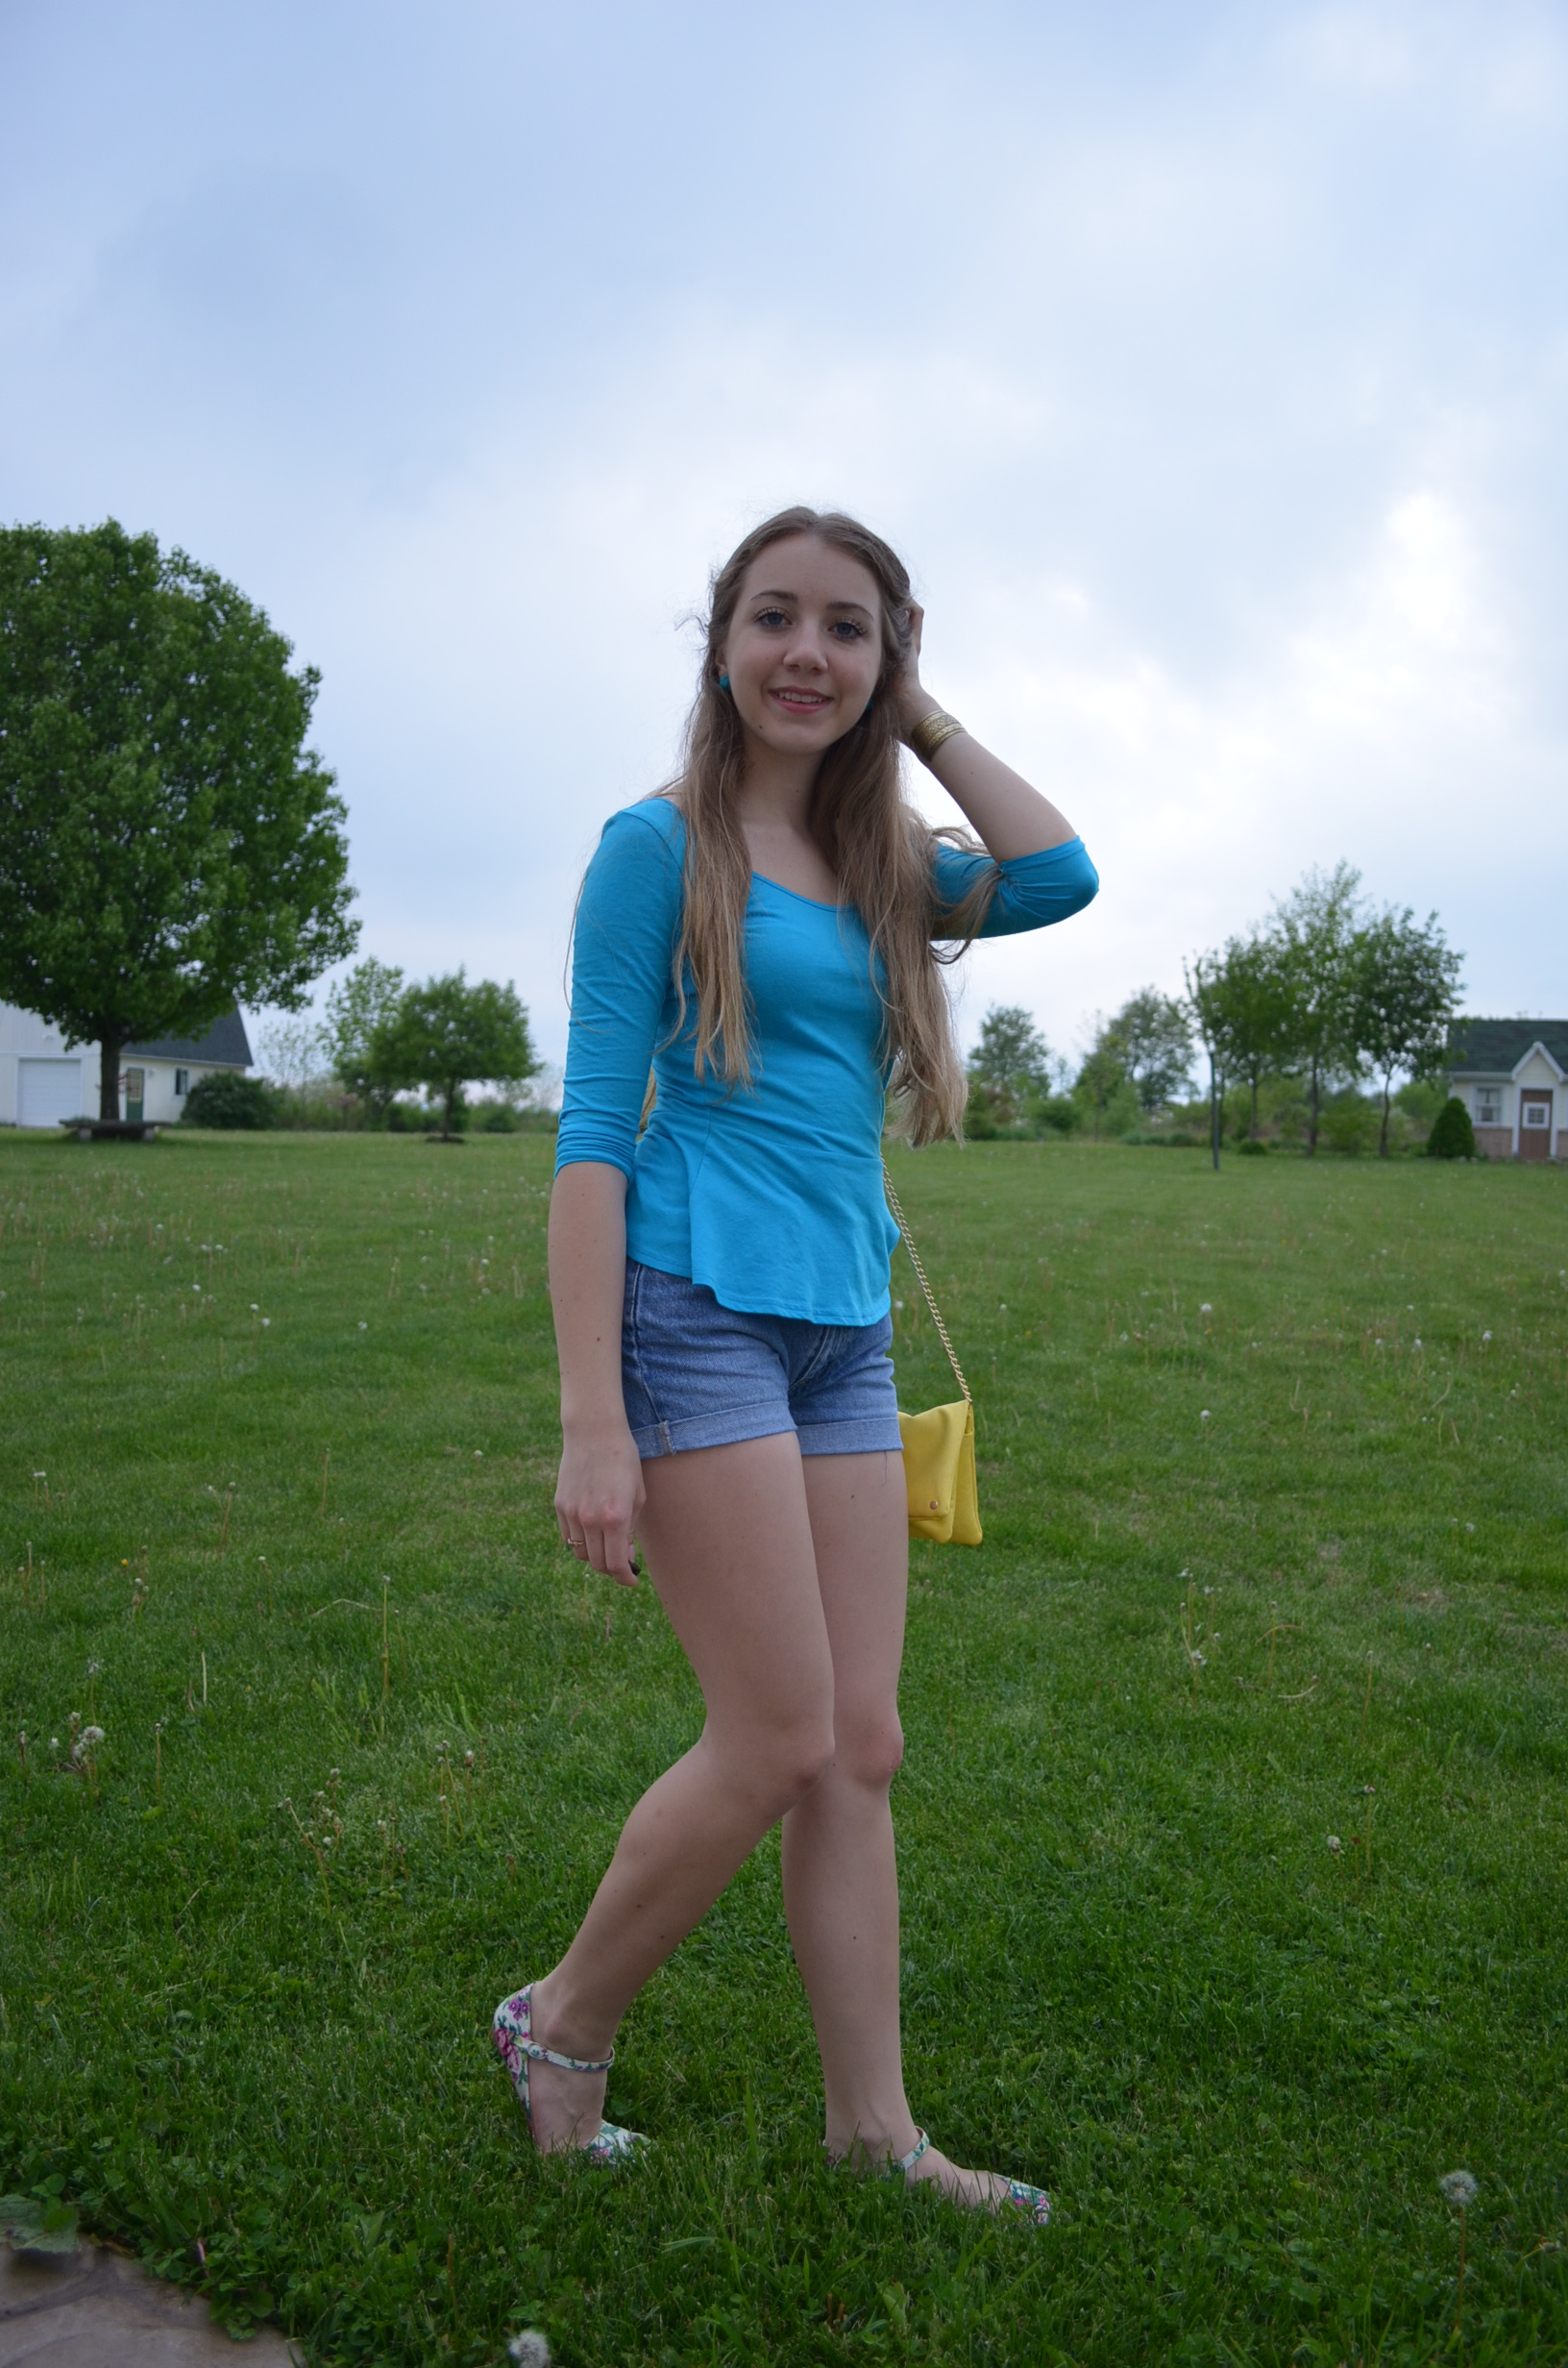 girls in shorts images